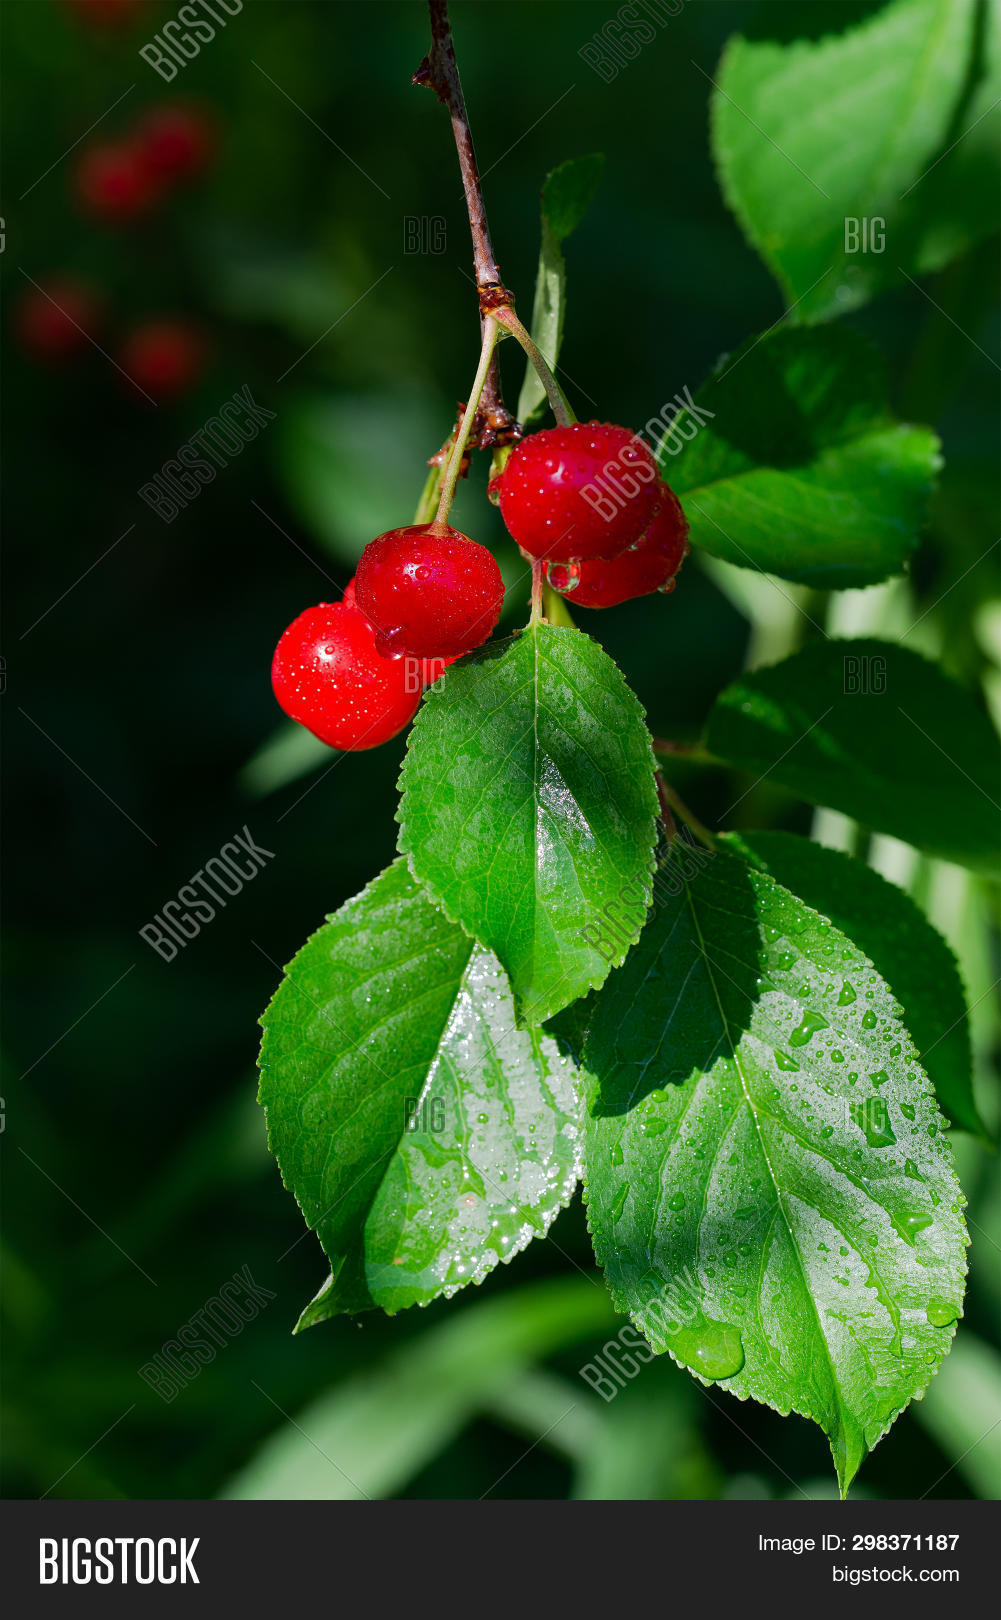 agriculture,appetizing,background,beam,berry,botanical,branch,bright,bunch,cherry,closeup,crimson,crop,delicious,flora,foliage,food,fresh,fruit,garden,gardening,green,hanging,harvest,harvesting,juicy,leaf,leaves,light,natural,nature,nutrition,organic,ray,red,ripe,round,season,shiny,summer,sunlight,sweet,tree,useful,vitamin,water